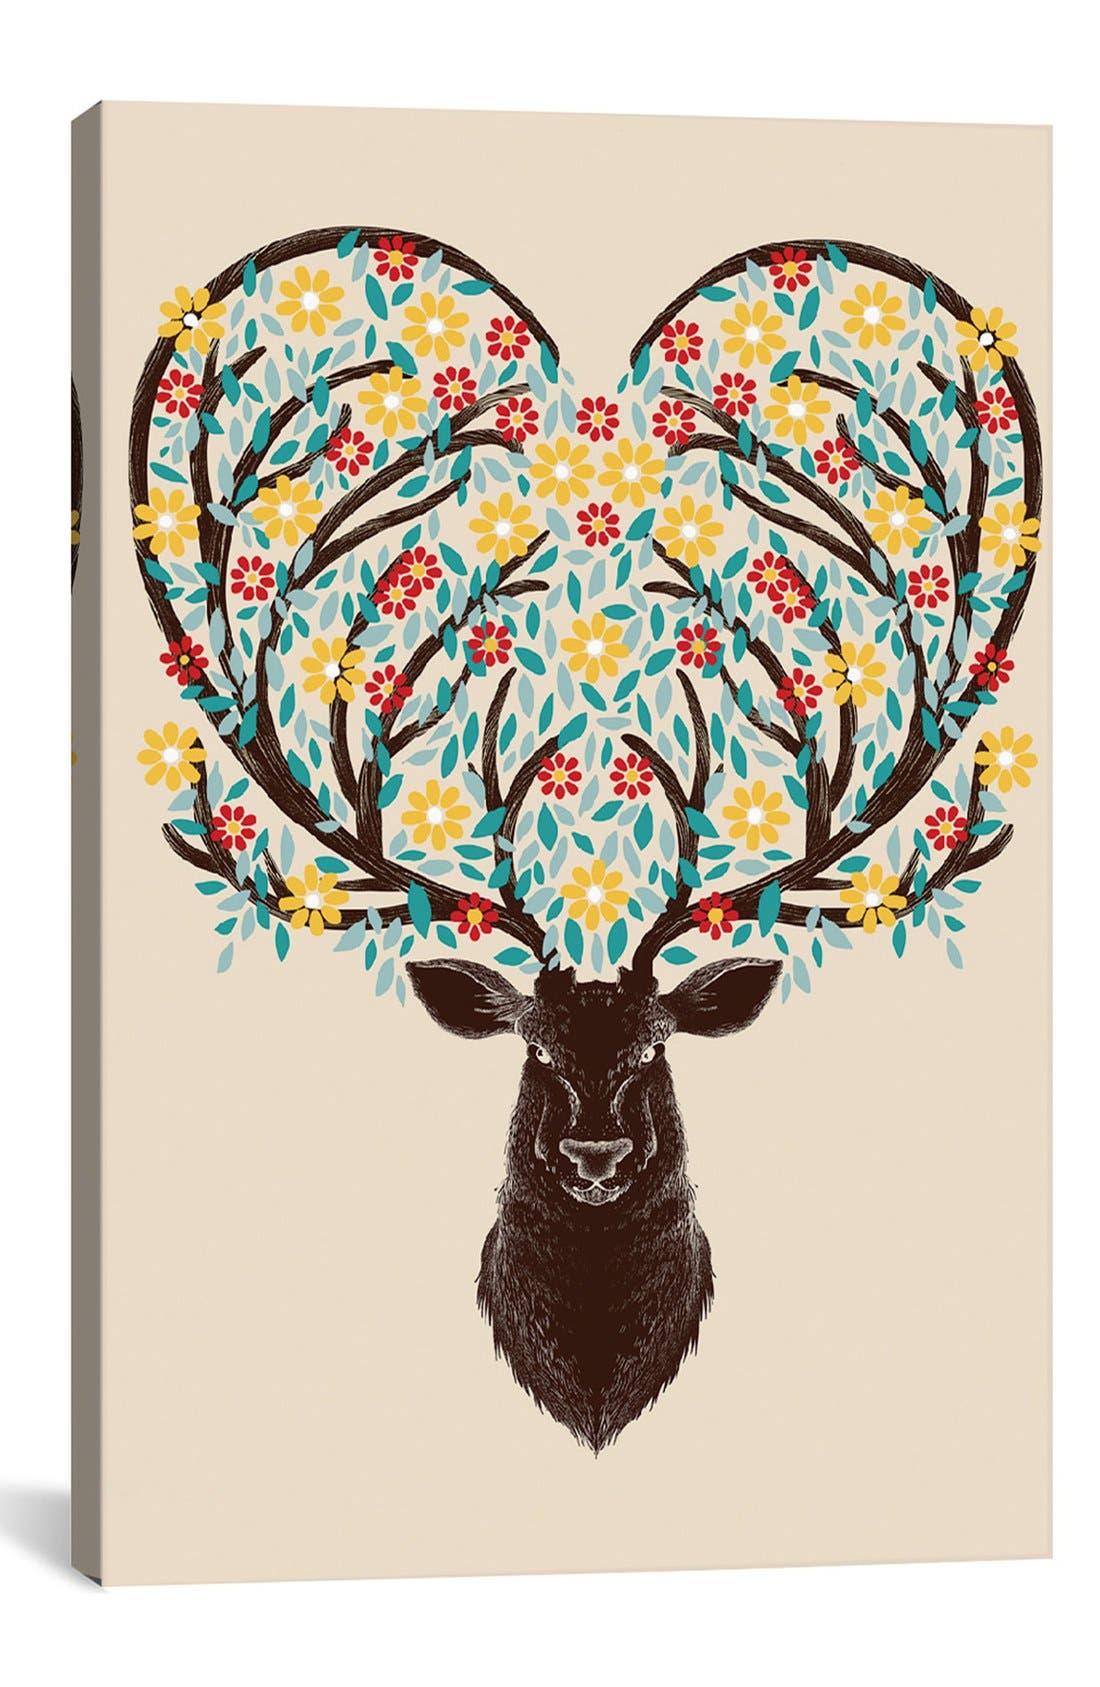 'Blooming Deer' Giclée Print Canvas Art,                         Main,                         color, Beige